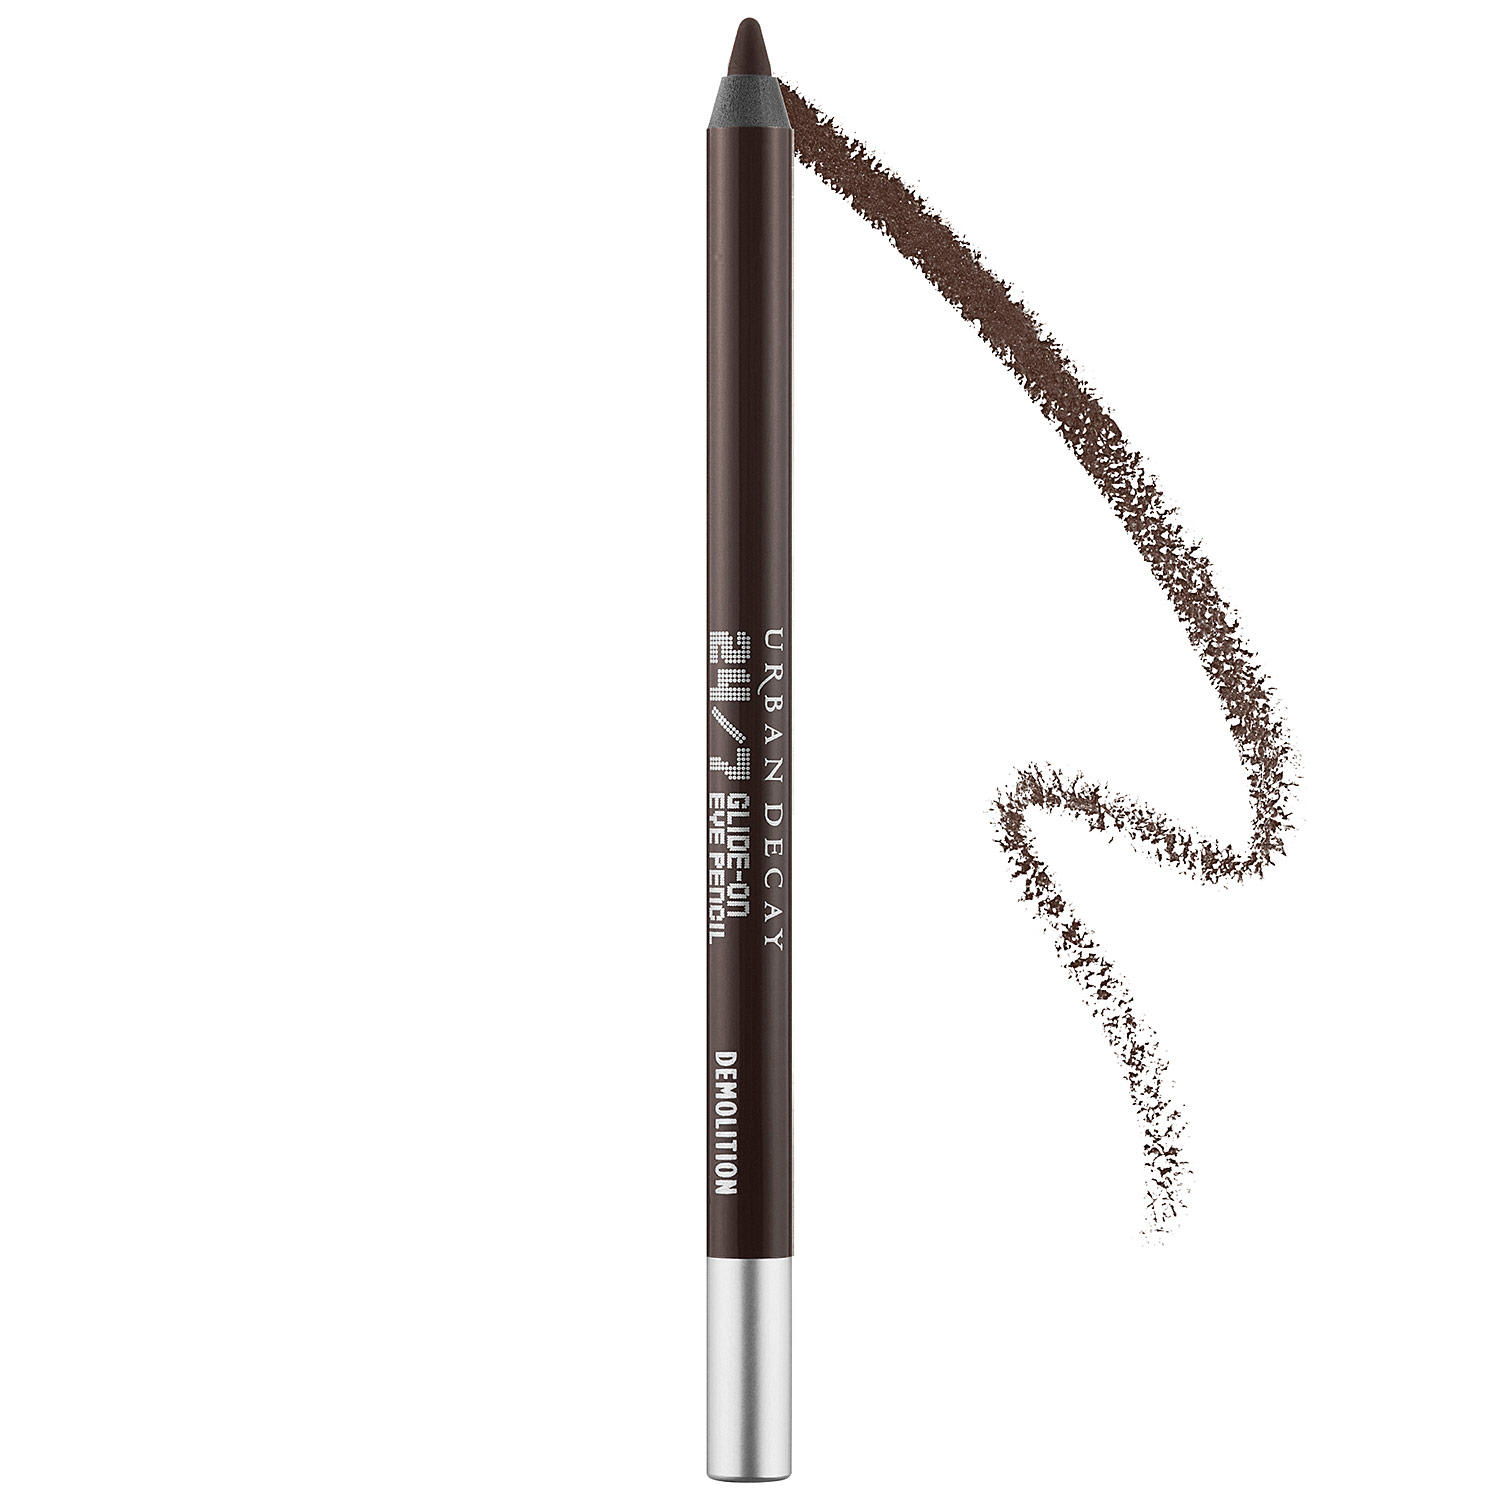 Urban Decay 24/7 Glide-On Eyeliner Pencil Demolition